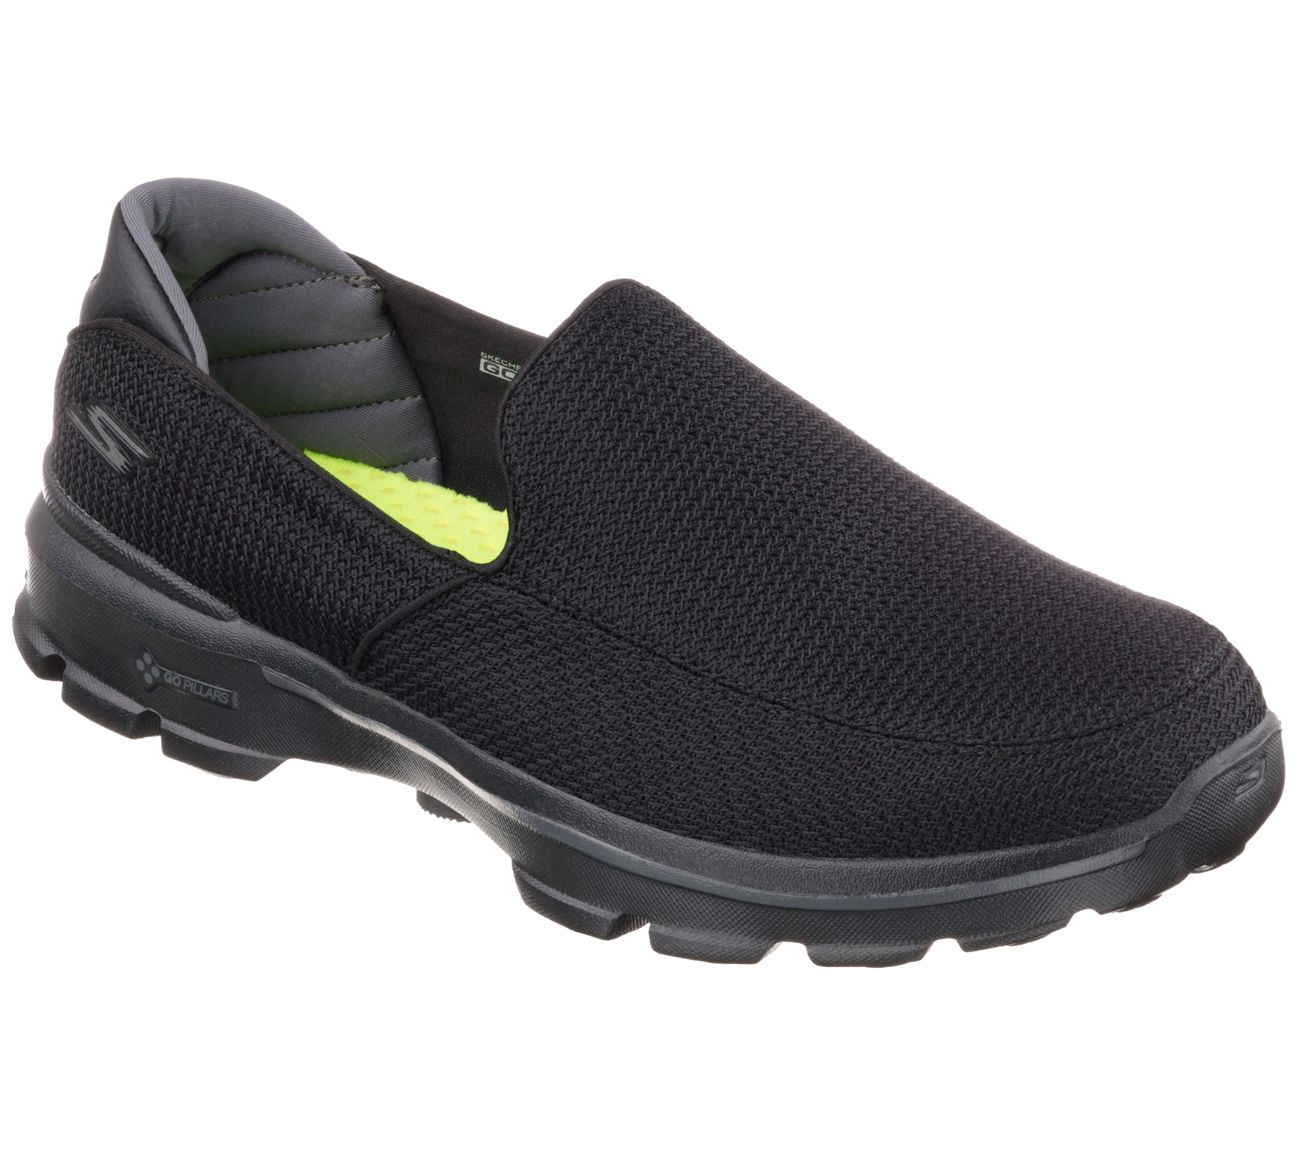 Skechers GOwalk 3 - Navy Slip-On Comfort Walking Sneaker